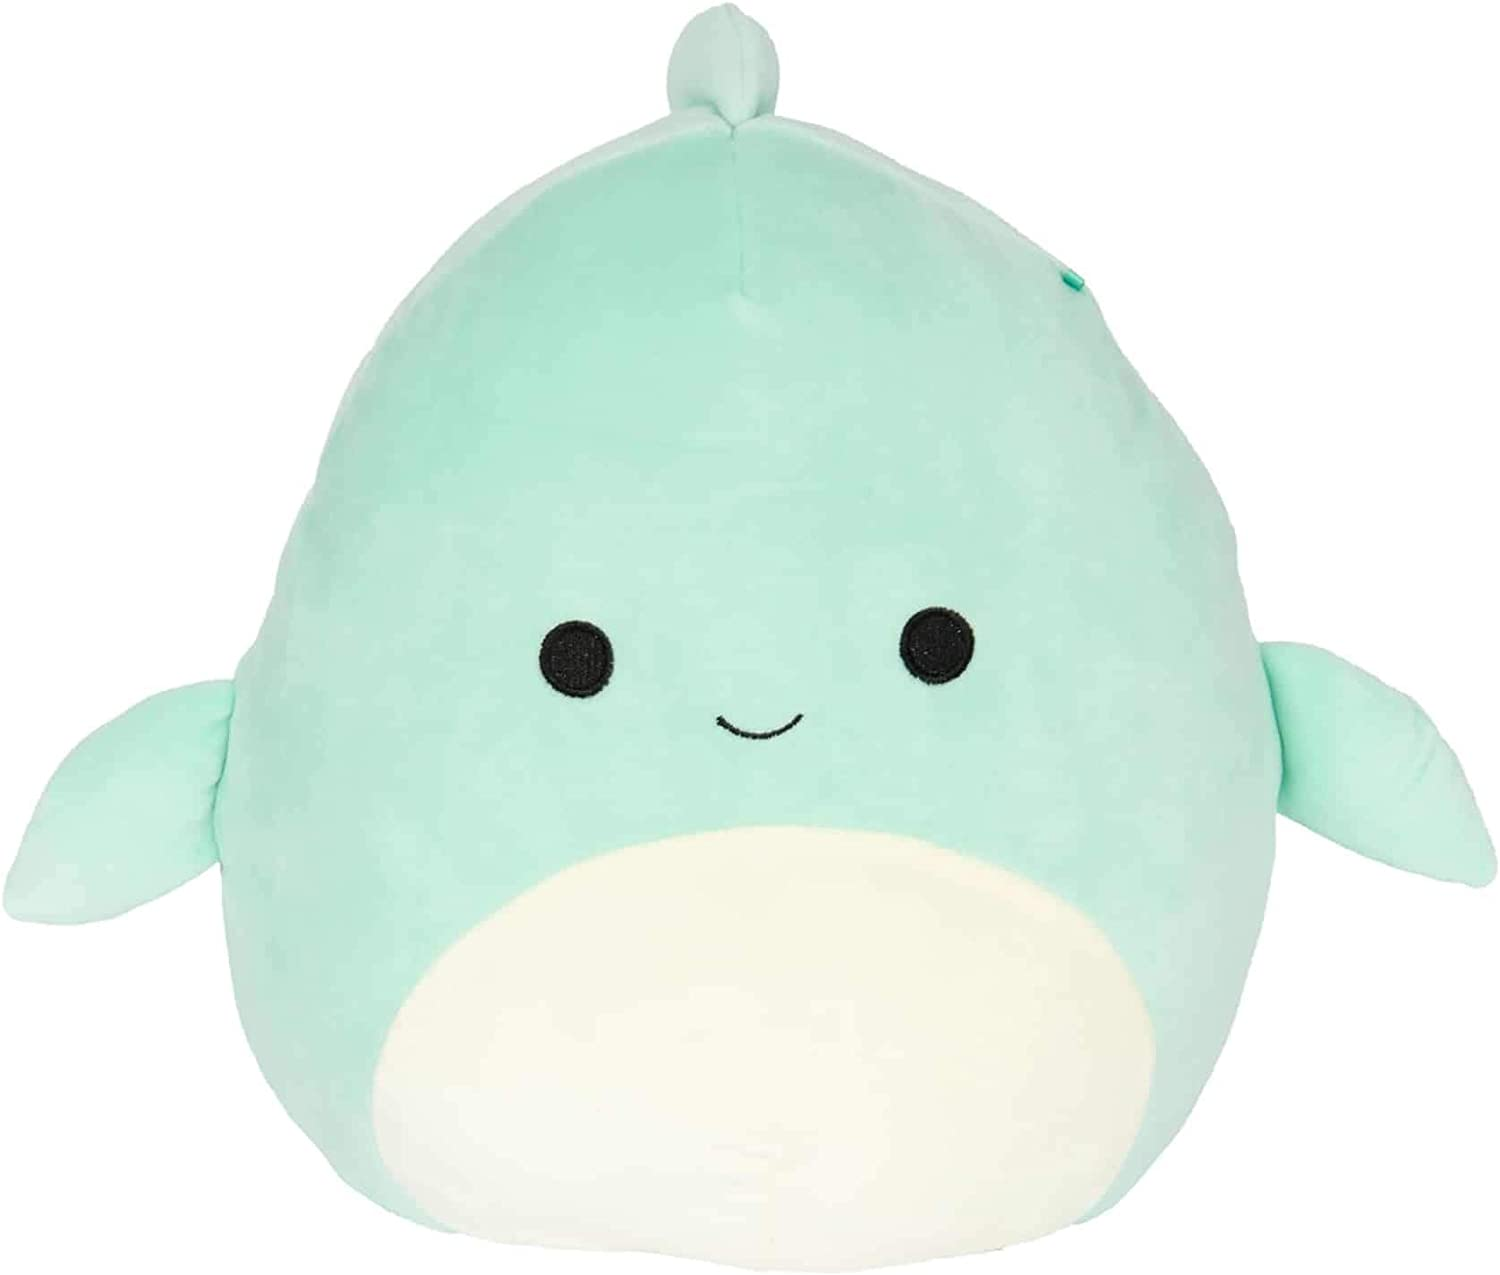 Squishmallow Kellytoy Sea Life 12 inch Perry The Dolphin- Super Soft Plush Toy Pillow Pet Animal Pillow Pal Buddy Stuffed Animal Birthday Gift Holiday